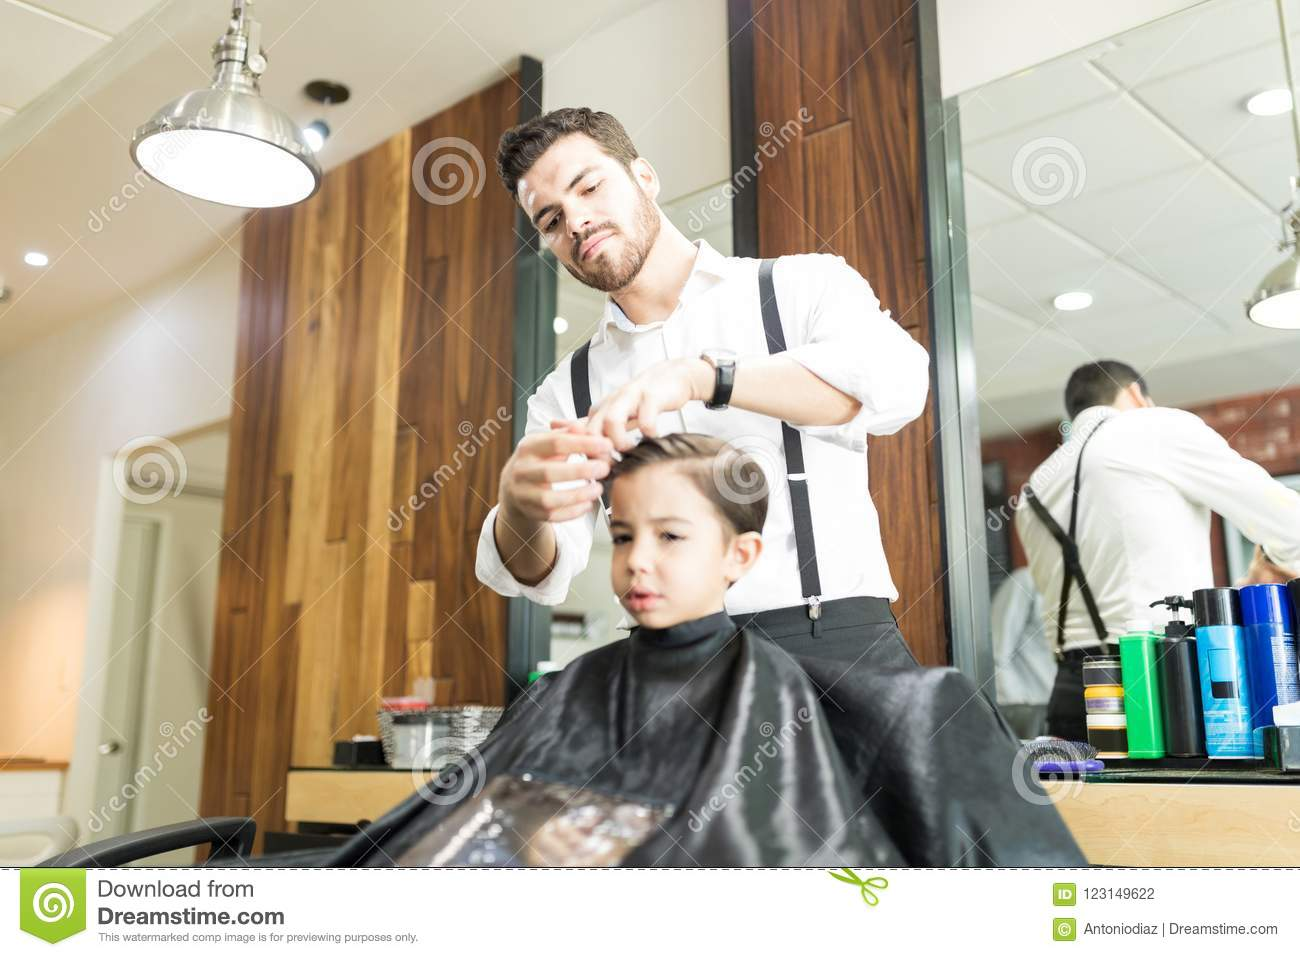 Young Barber Styling Boys Hair After Haircut In Shop Stock Photo